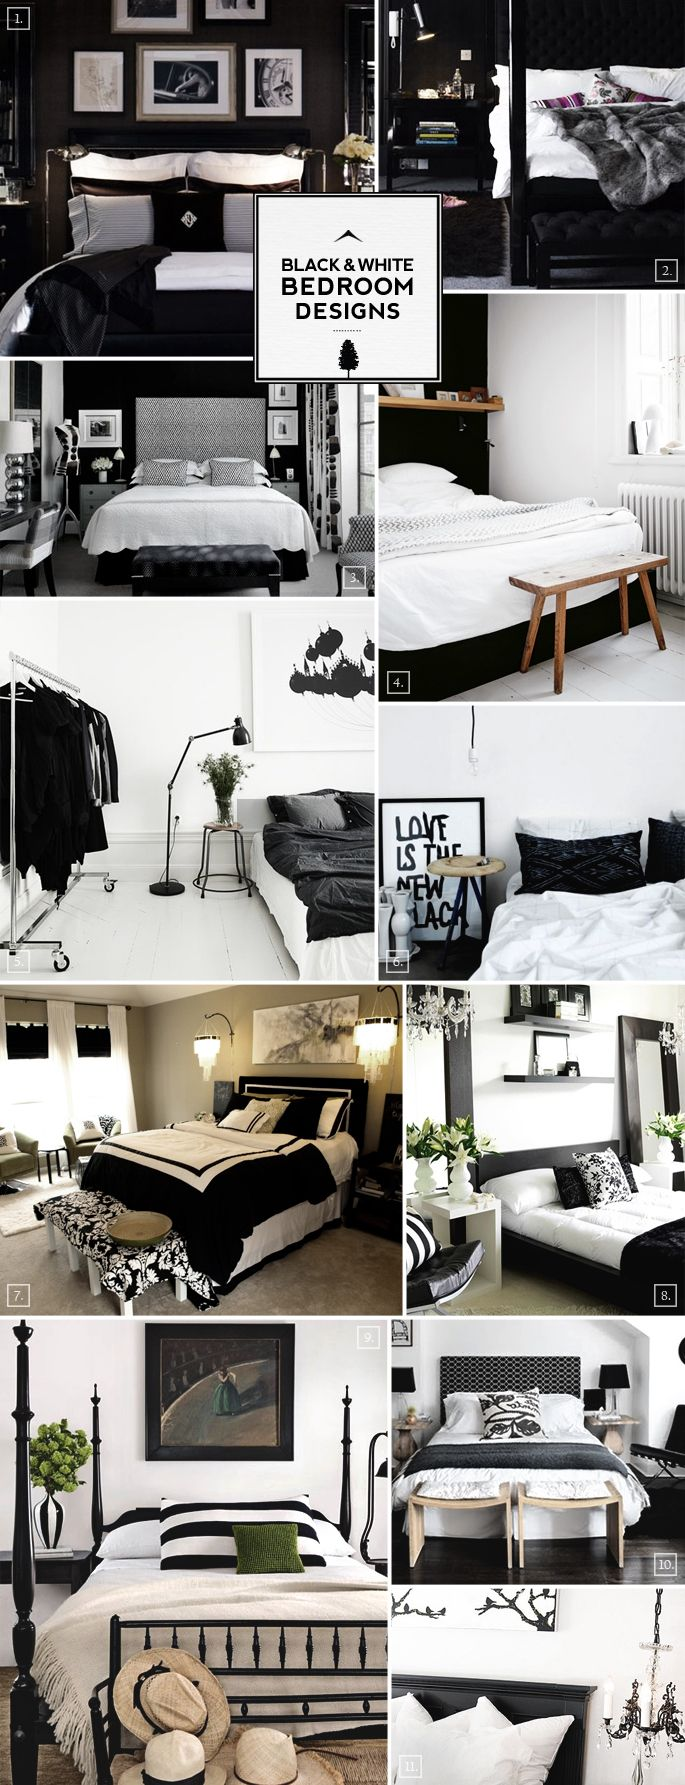 black and white bedroom decor. Black And White Bedroom Designs Decor Ideas